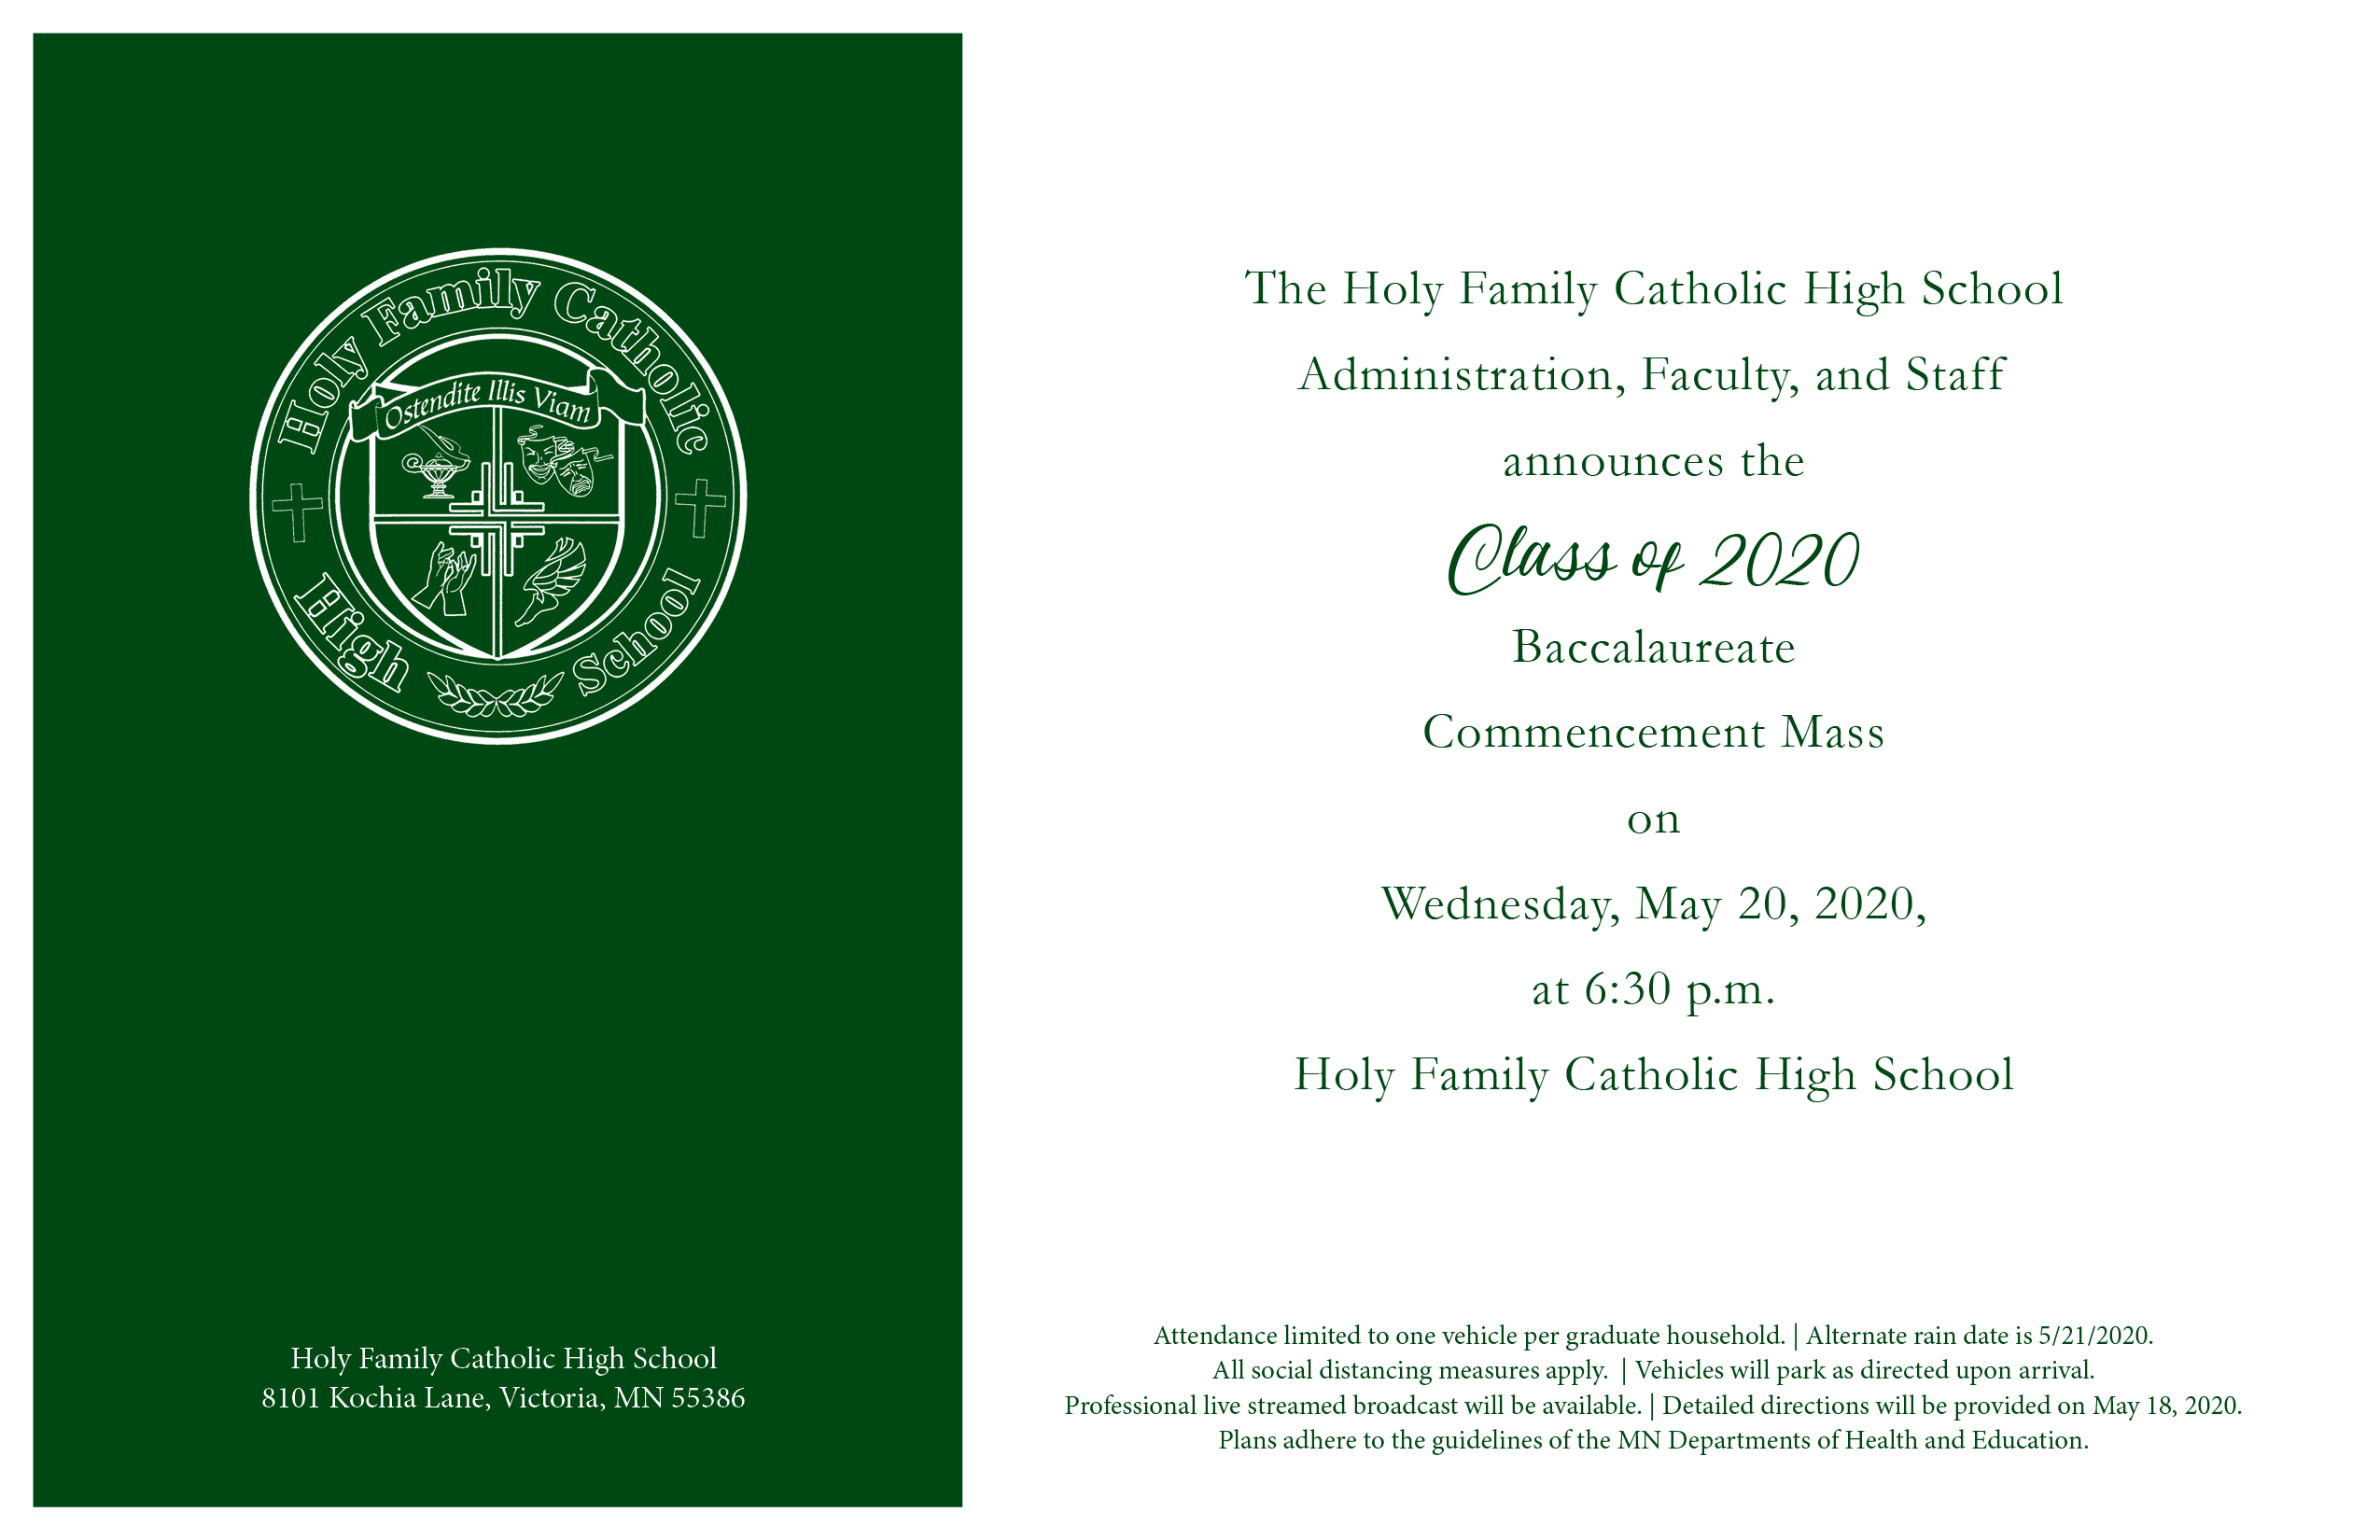 Class of 2020 Baccalaureate & Commencement Mass Featured Image.